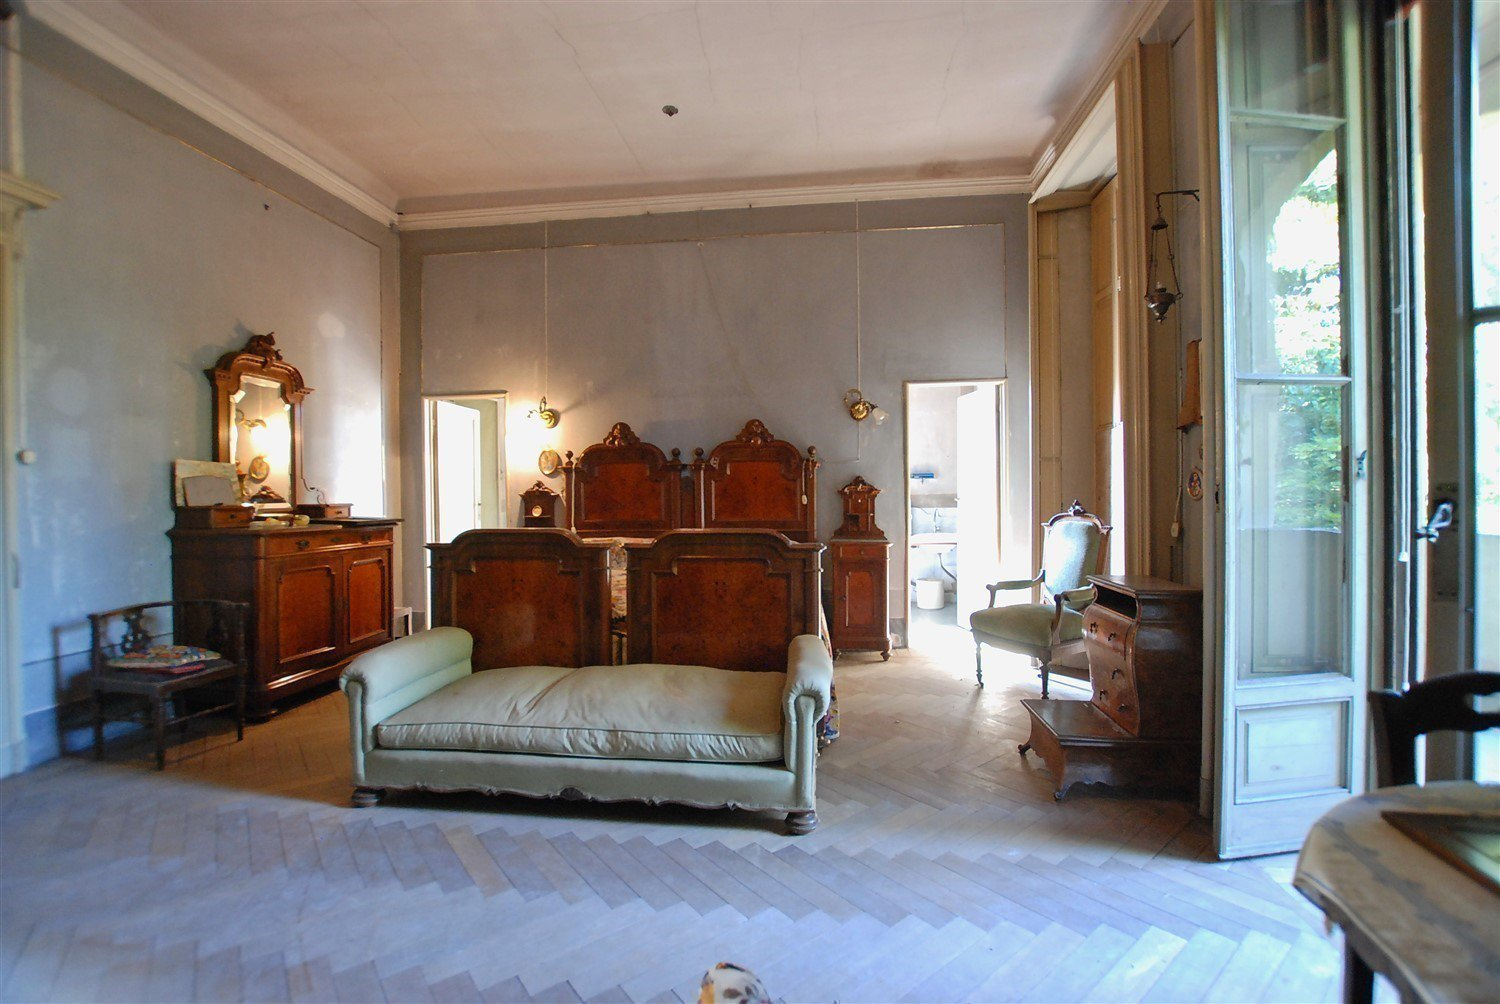 Historic villafor sale in Golasecca - room